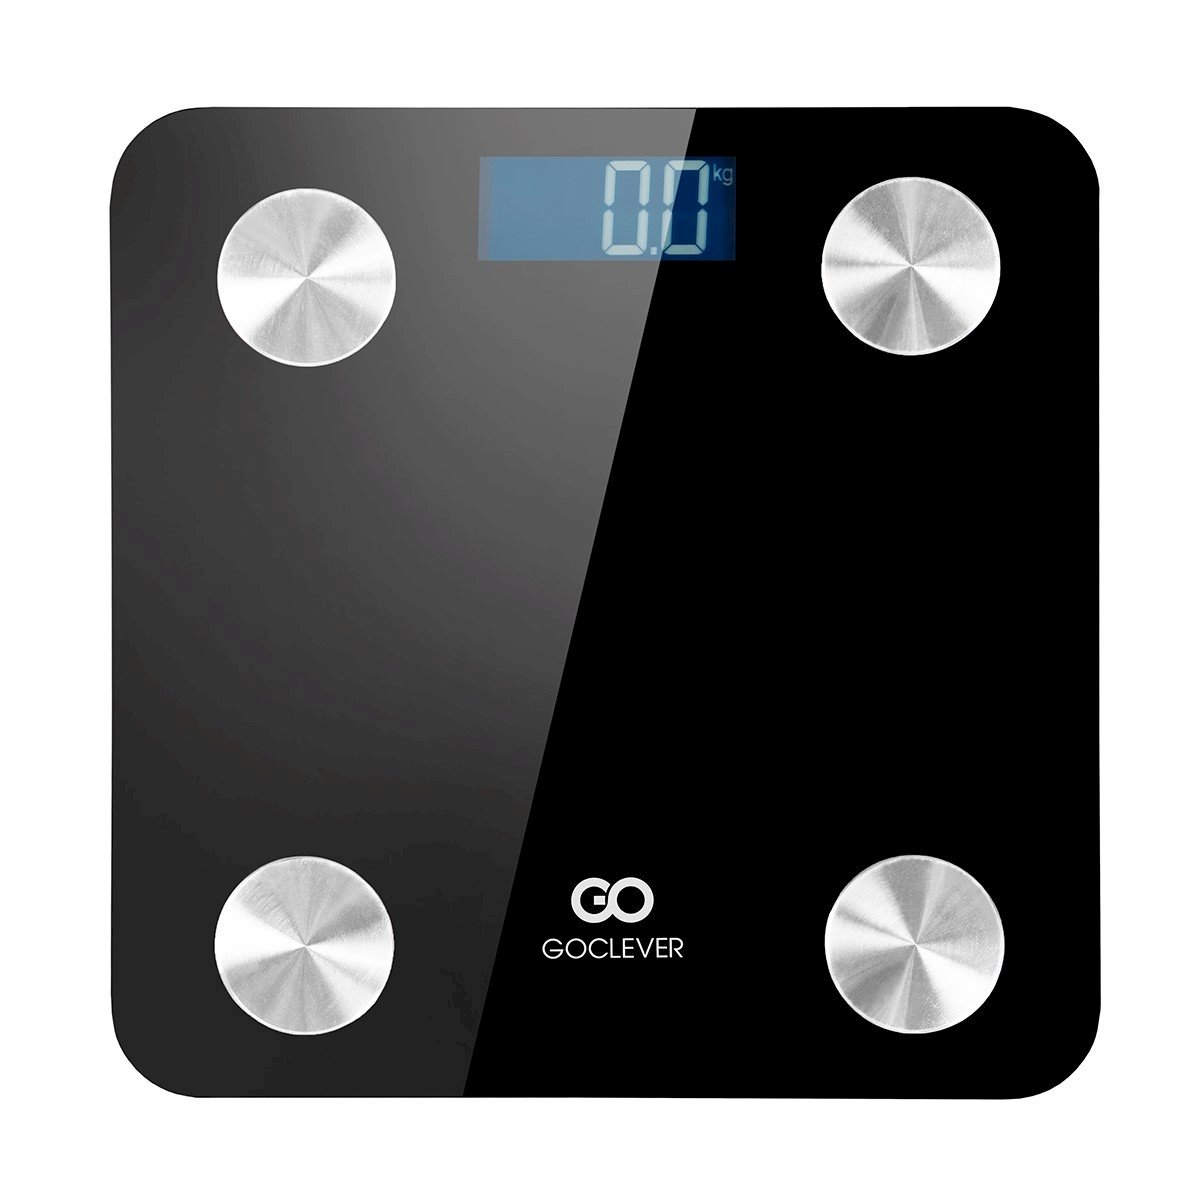 goclever-smart-scale-v2_01